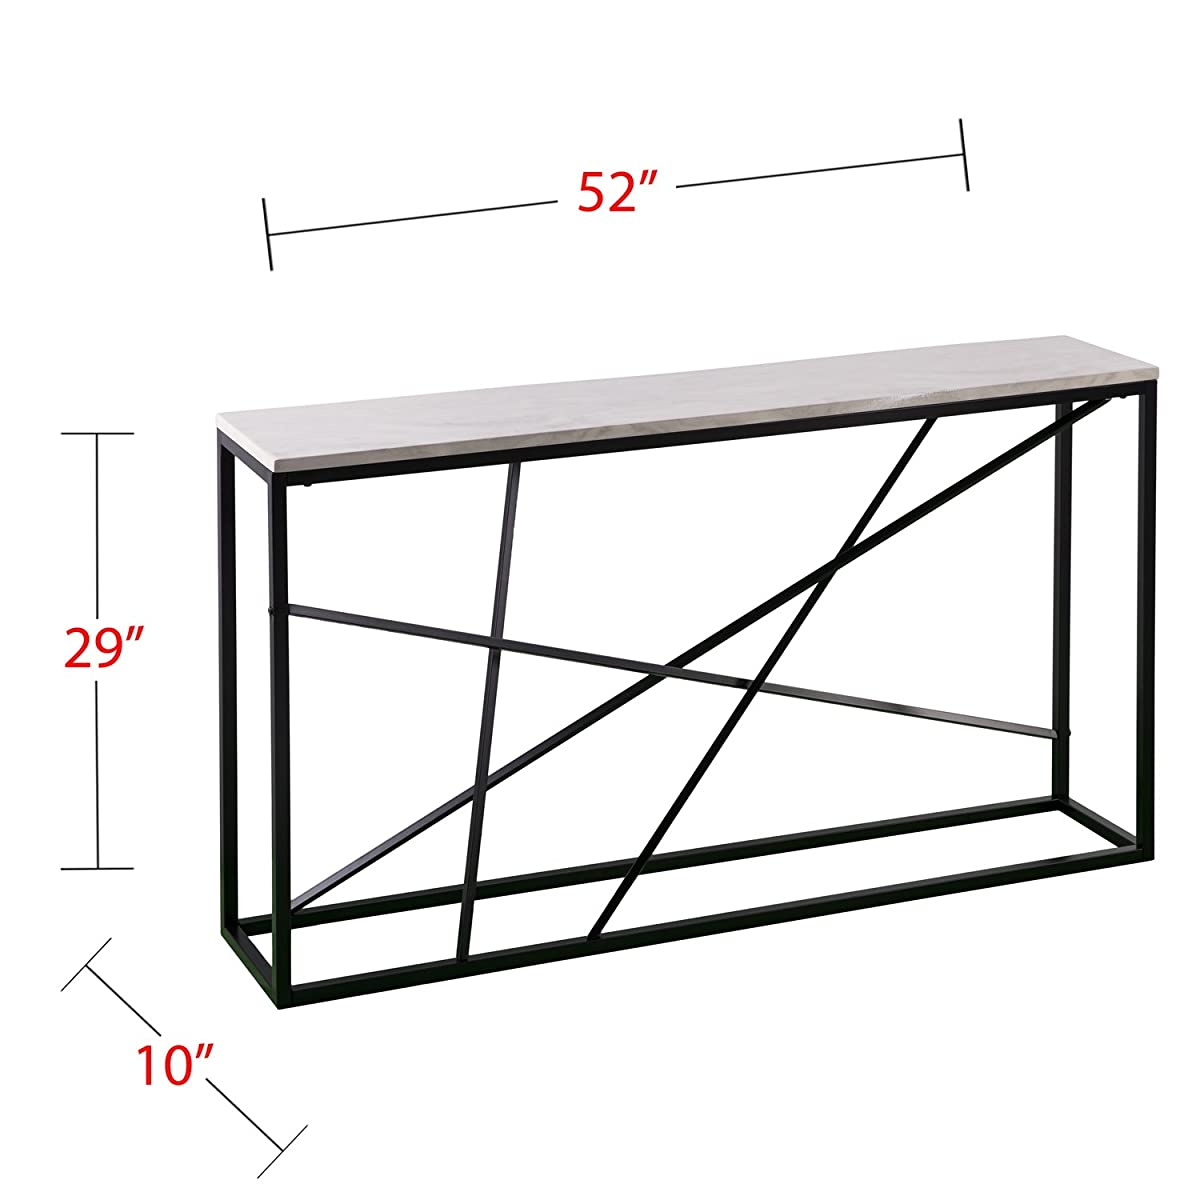 "Furniture HotSpot - Faux Marble Top Skinny Console – Matte Black w/White - 52"" W x 10"" D x 29"" H"